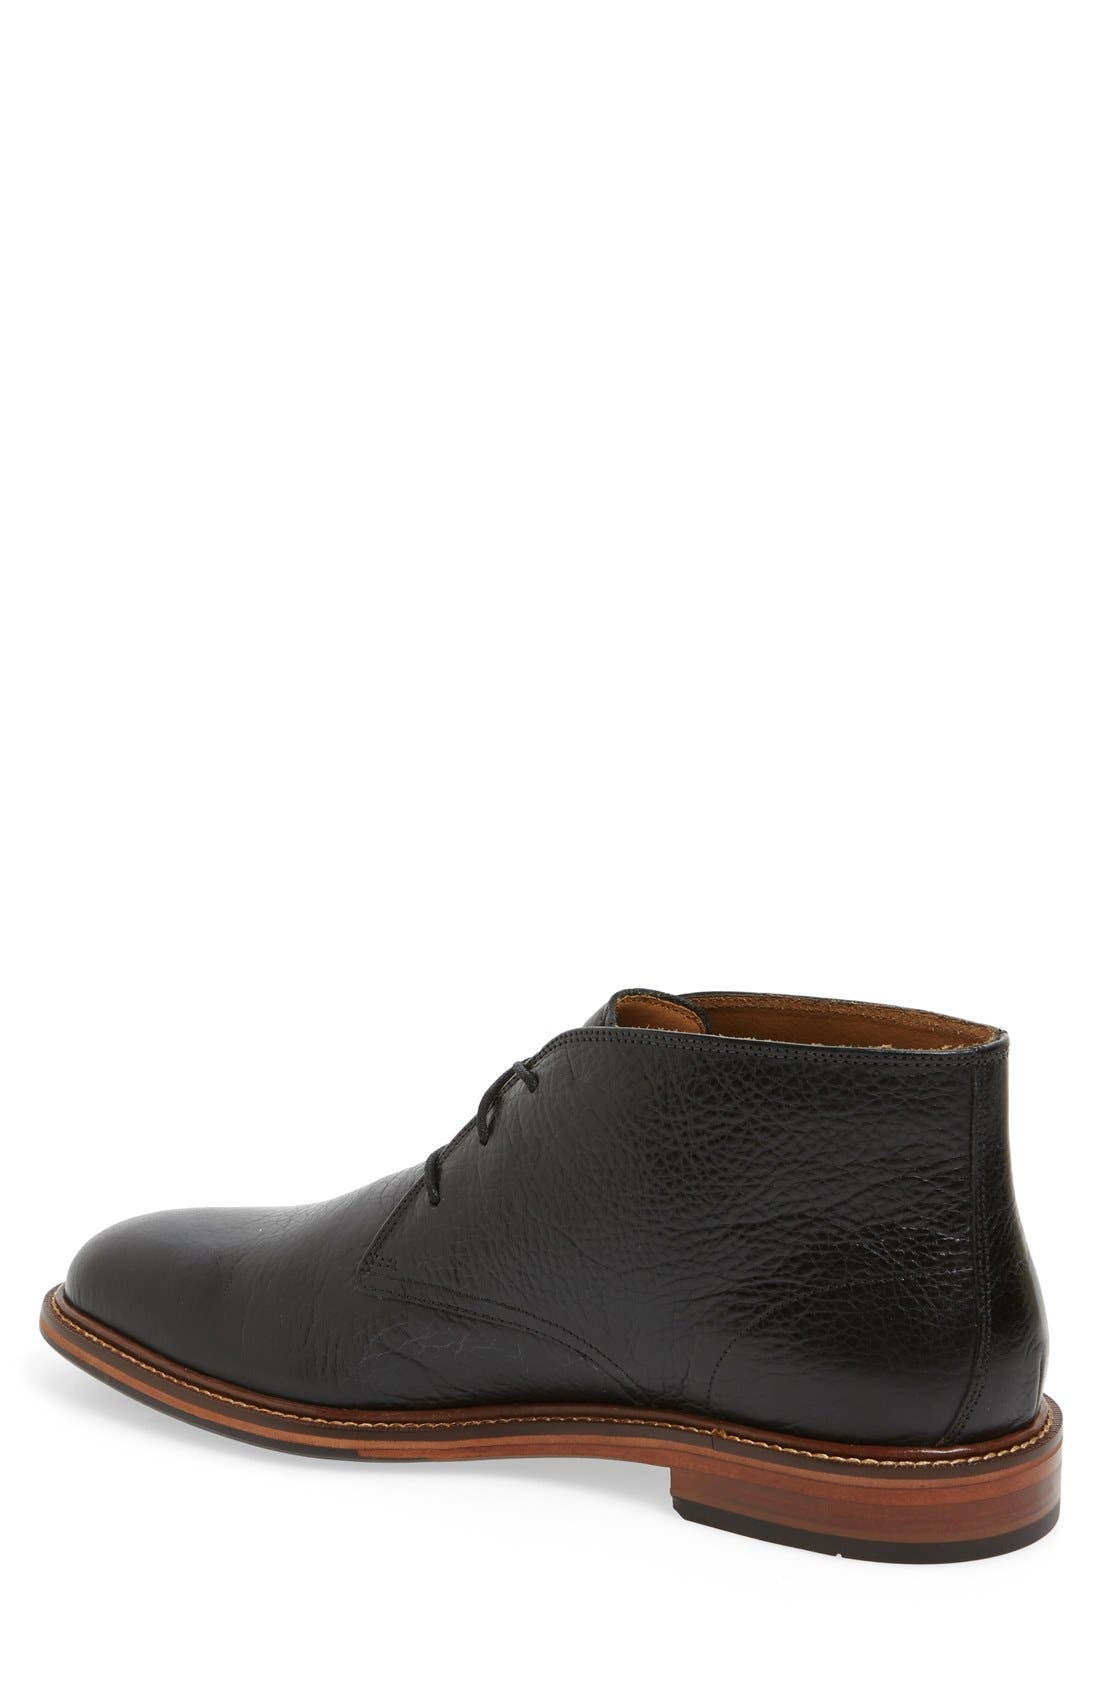 'Barron' Chukka Boot,                             Alternate thumbnail 2, color,                             Black